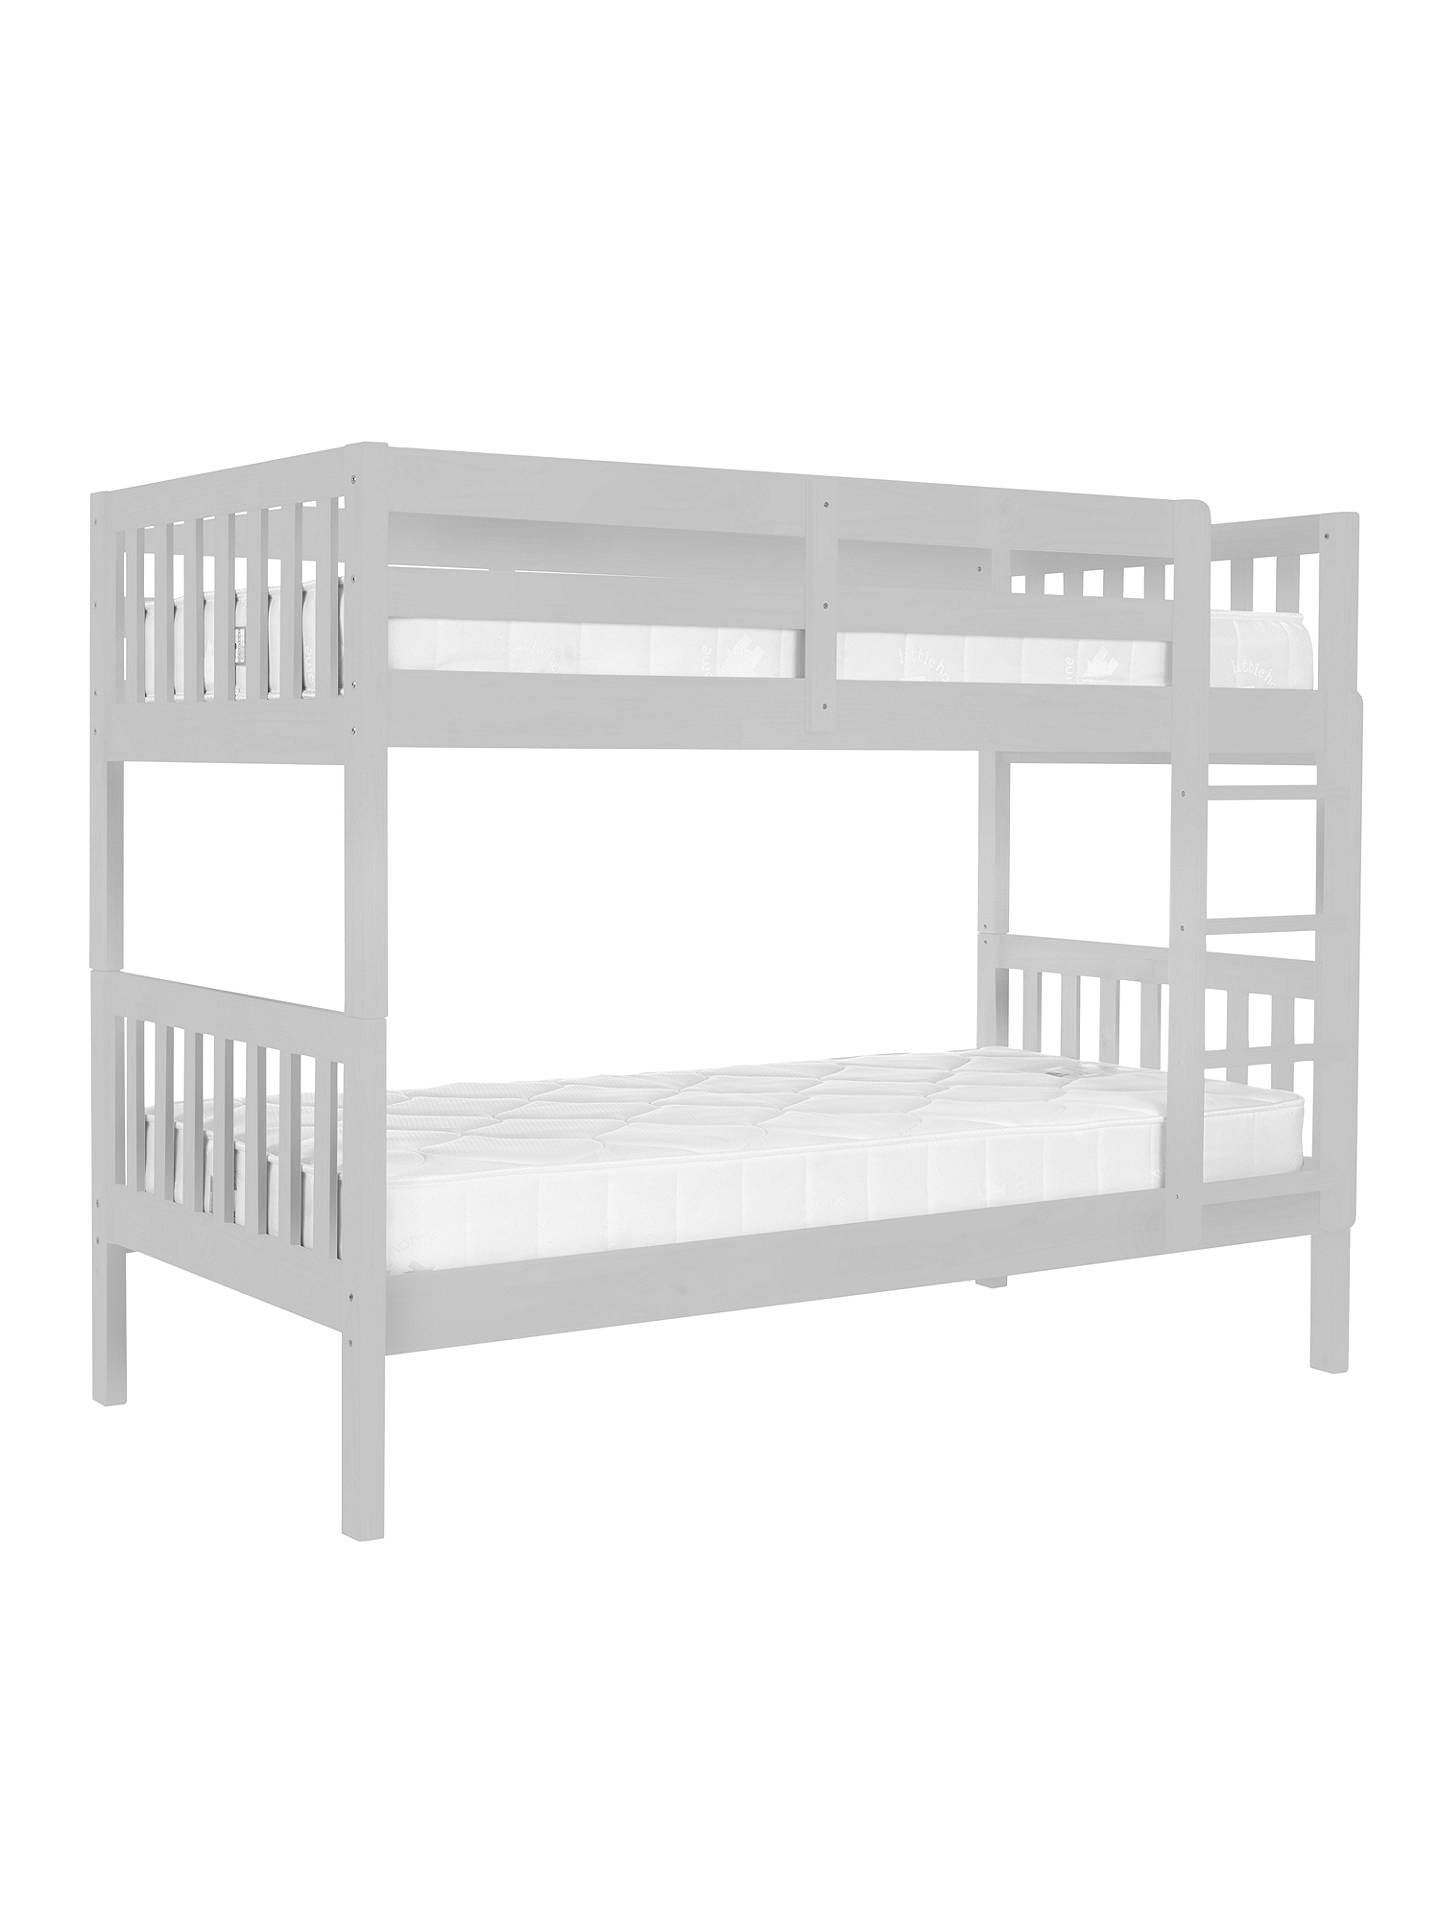 BuyJohn Lewis Wilton Bunk Bed with little home at John Lewis 15cm Deep Open Spring Water Resistant Mattresses, Single, Grey Online at johnlewis.com